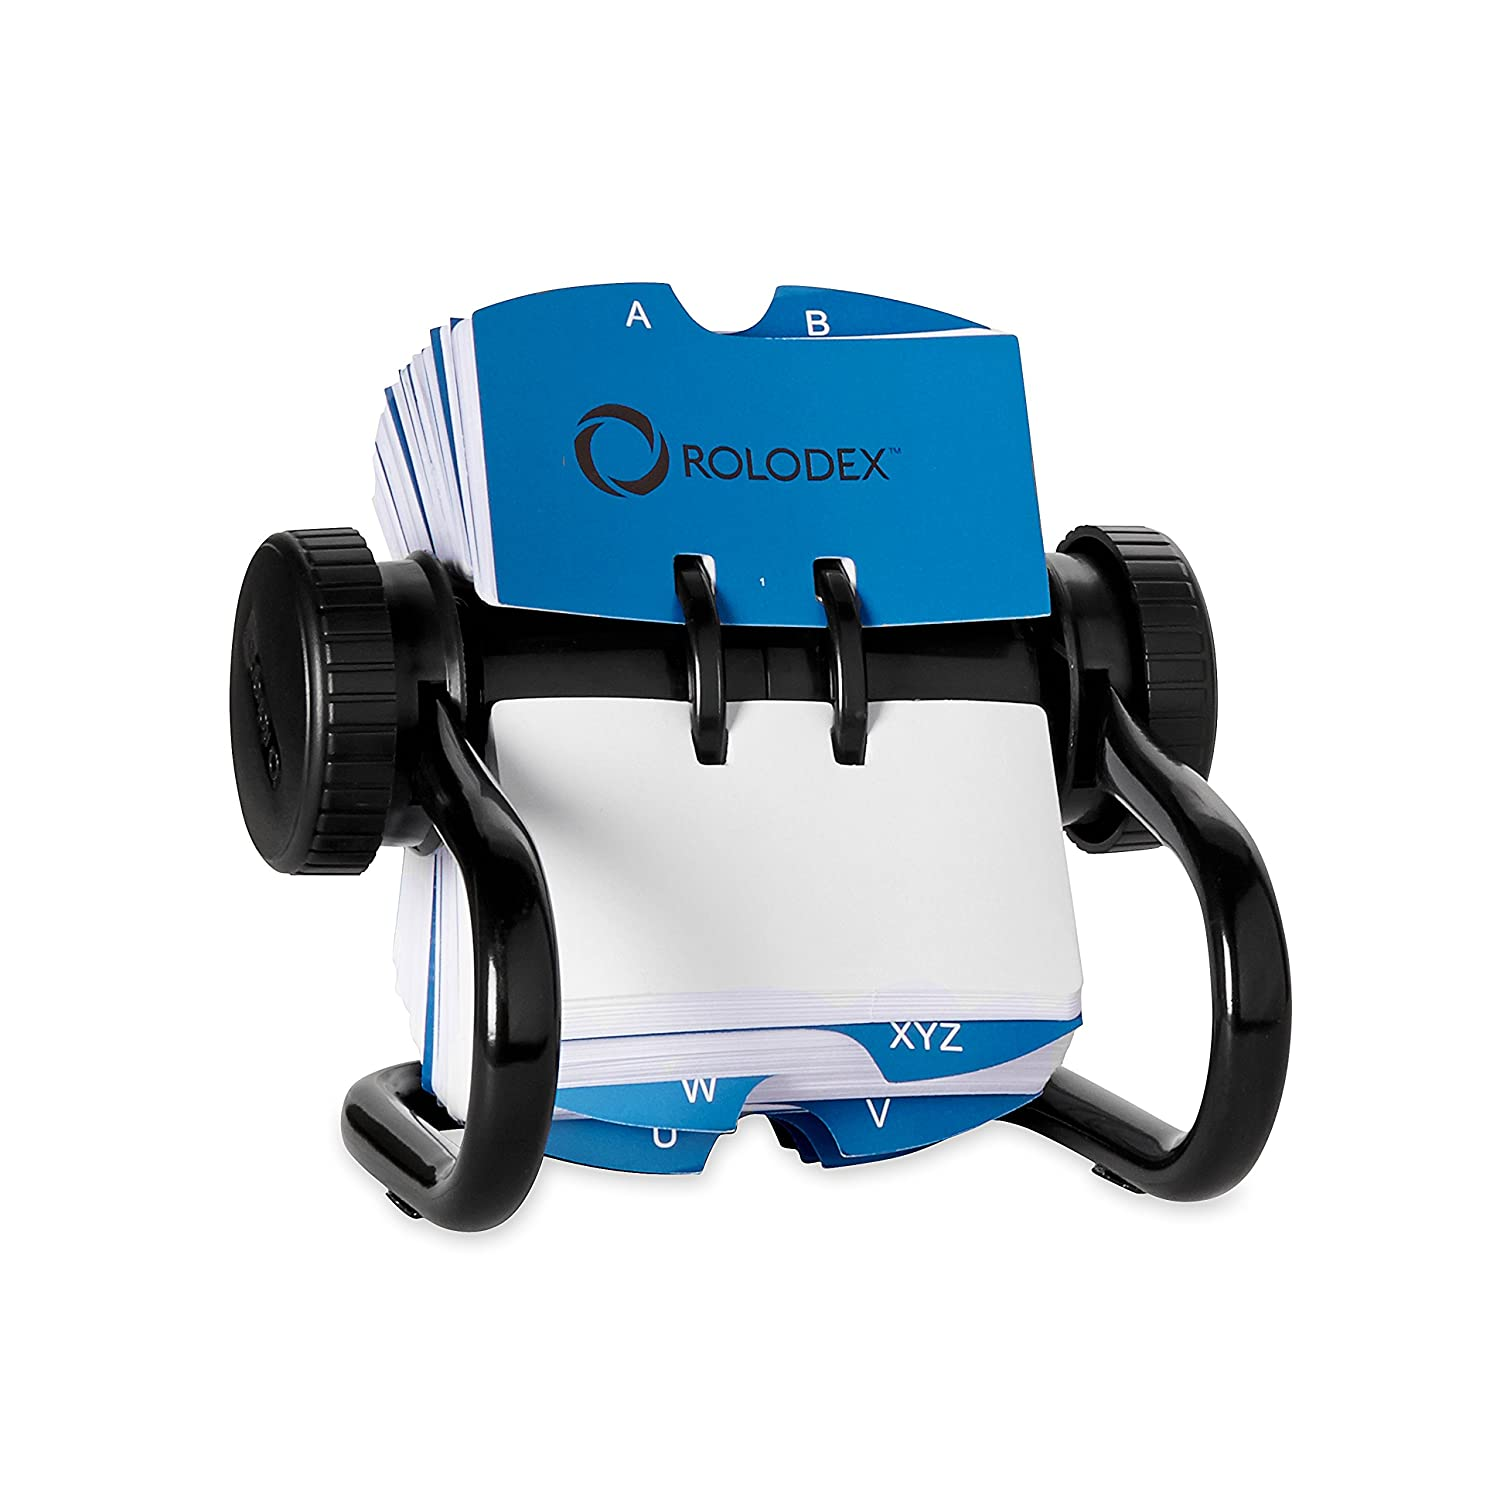 Rolodex Business Card Tray Black Large: Amazon.co.uk: Office Products